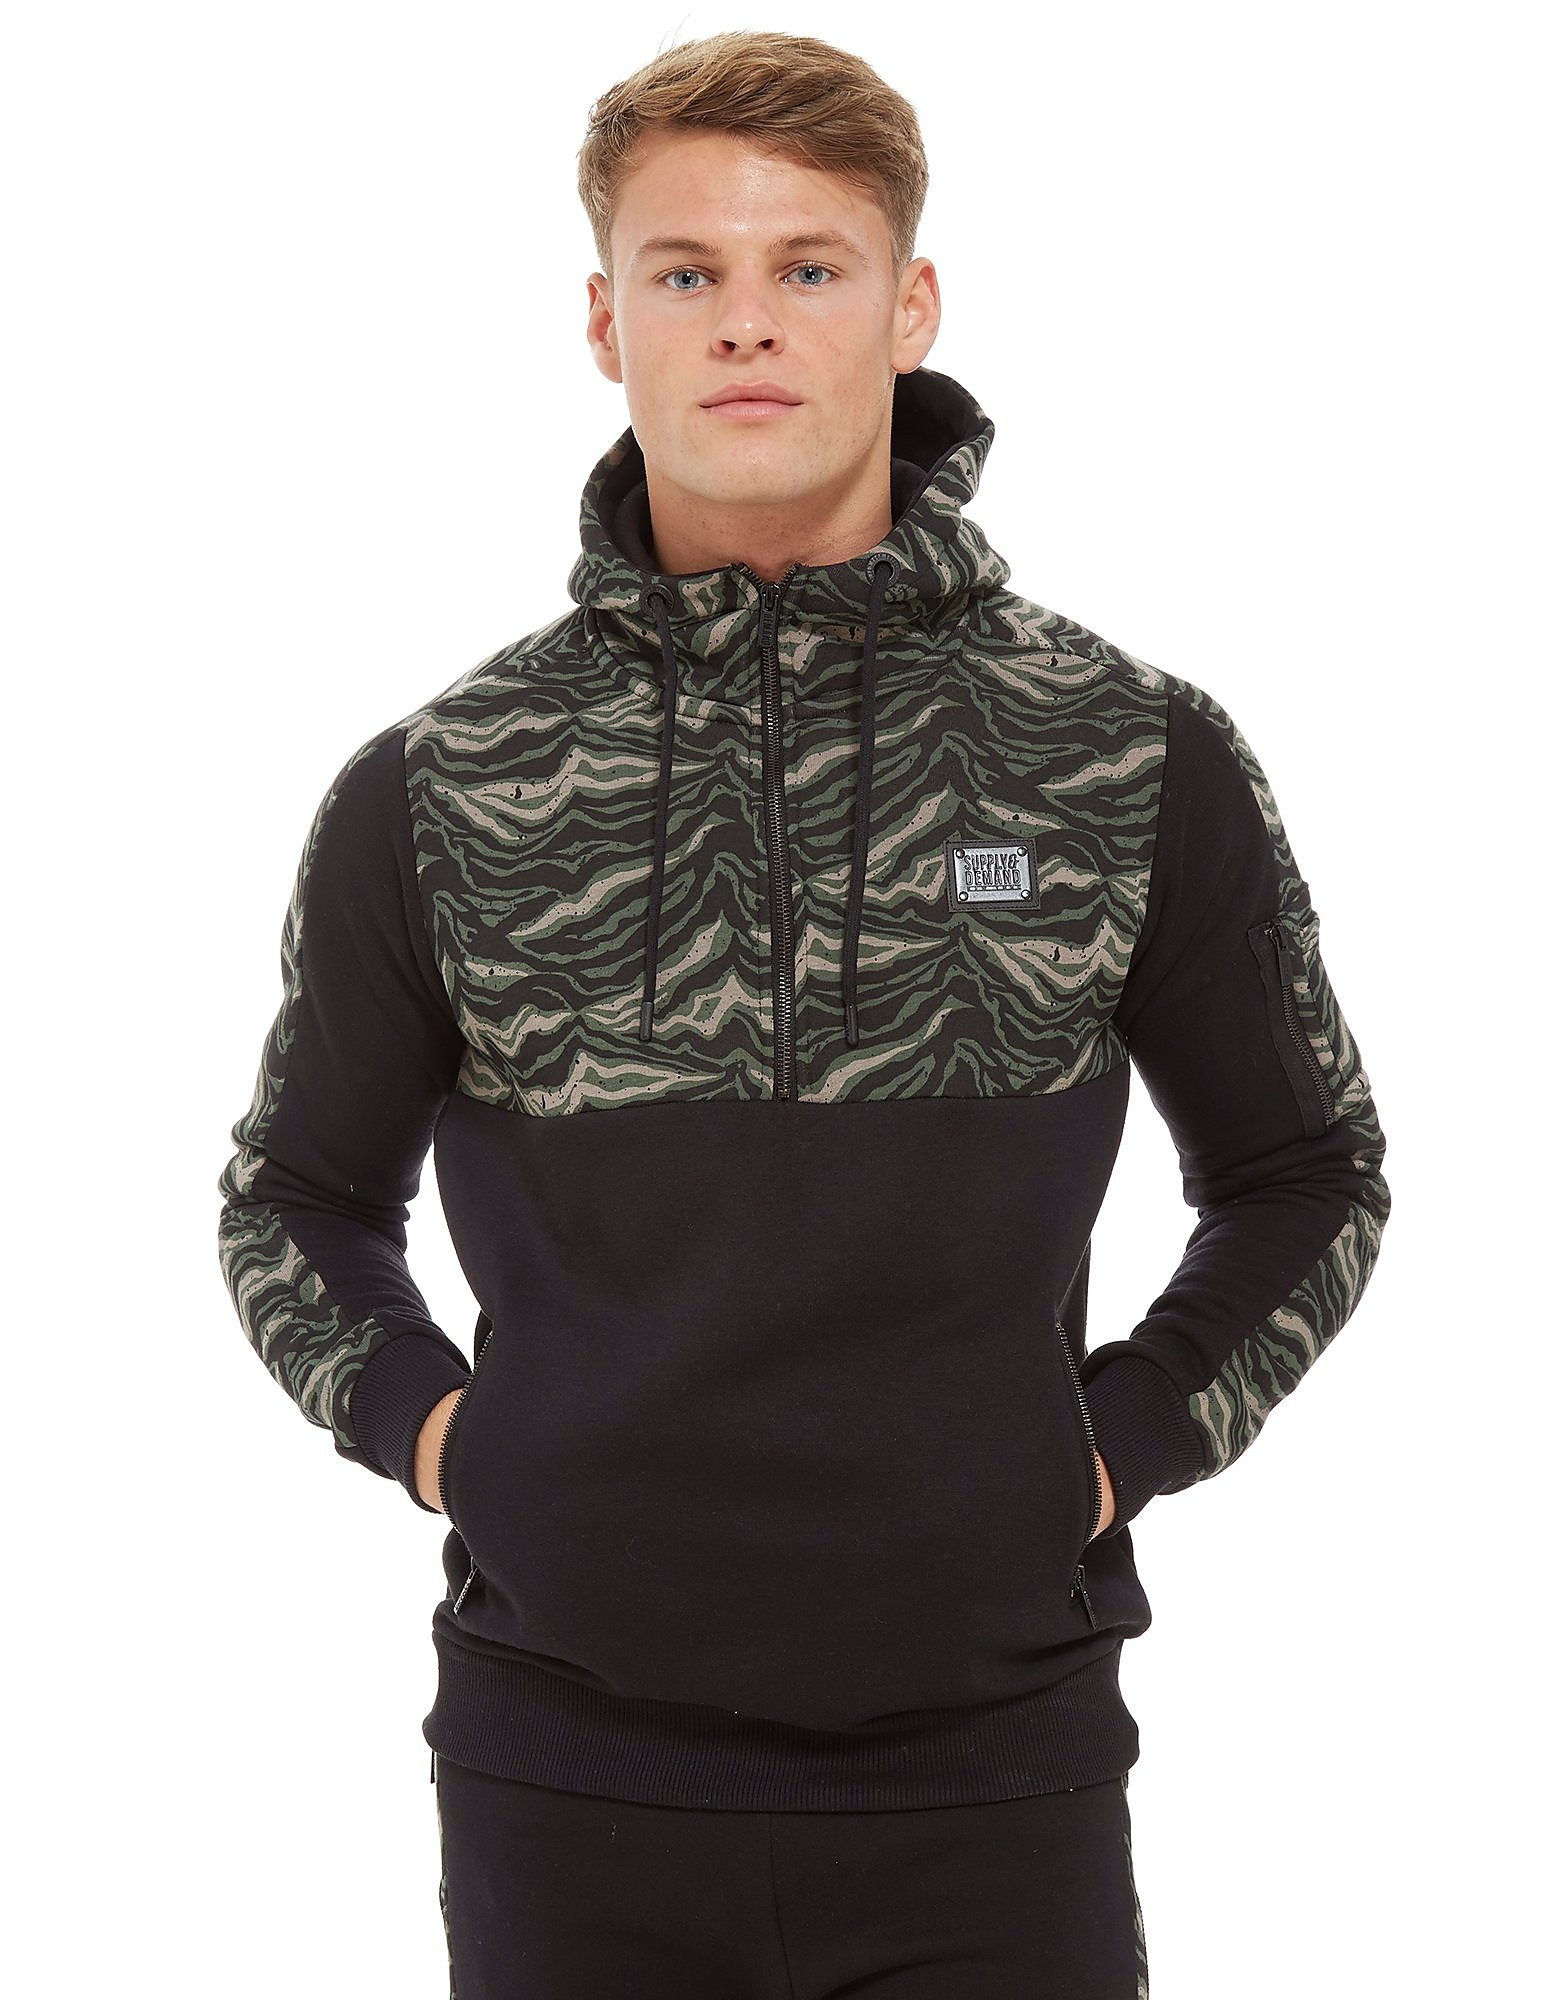 Supply & Demand Tiger Camo 1/2 Zip Hoodie - Only at JD, Black